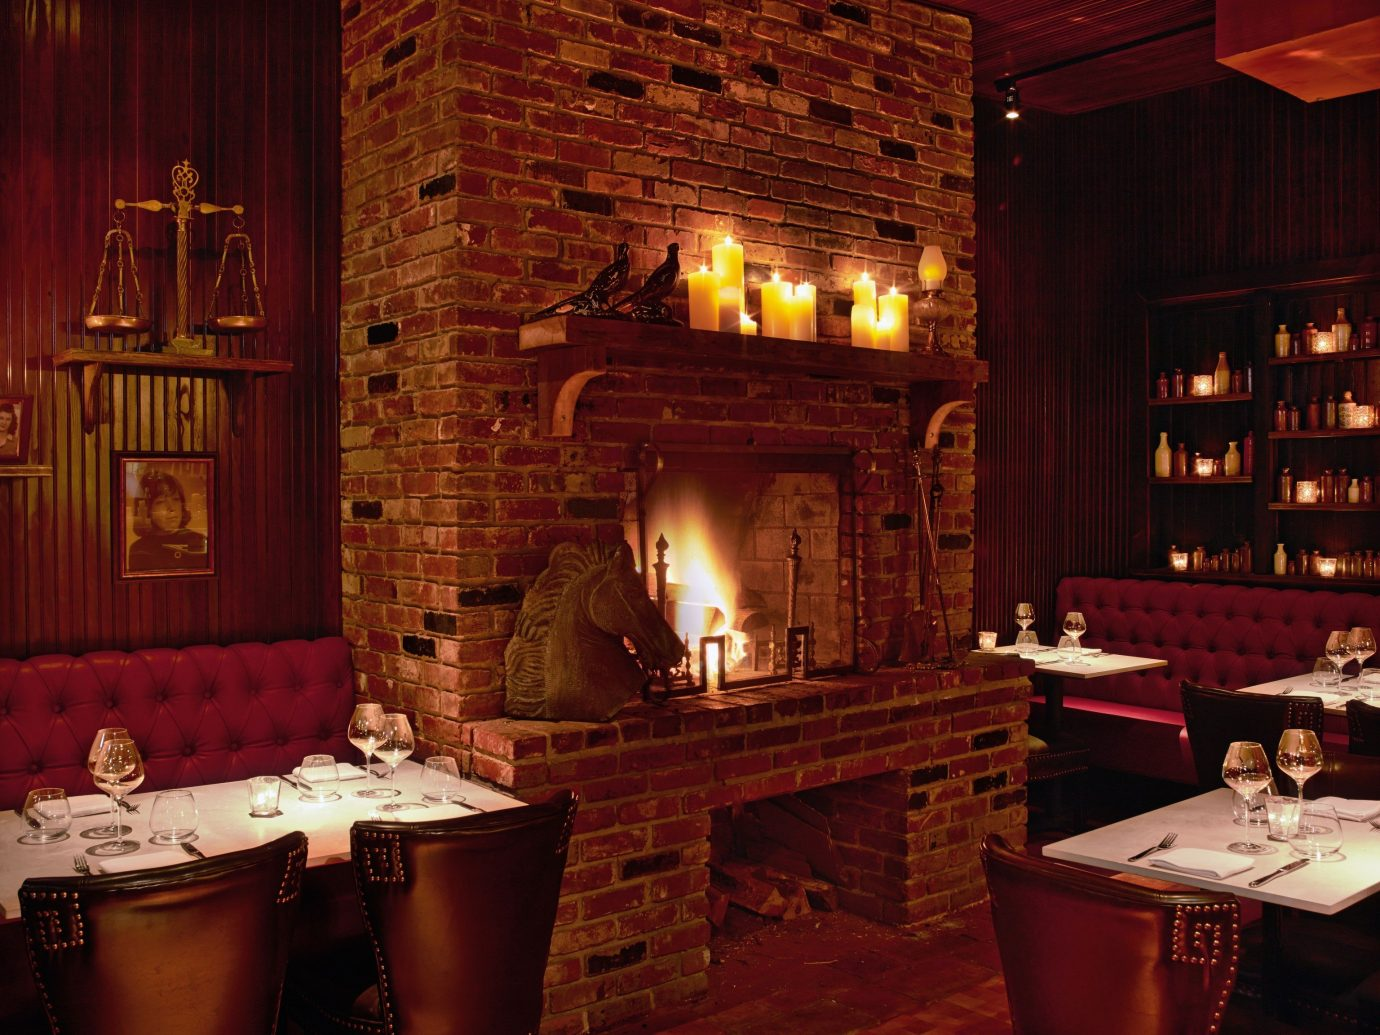 Food + Drink indoor room restaurant lighting interior design Bar estate Fireplace decorated